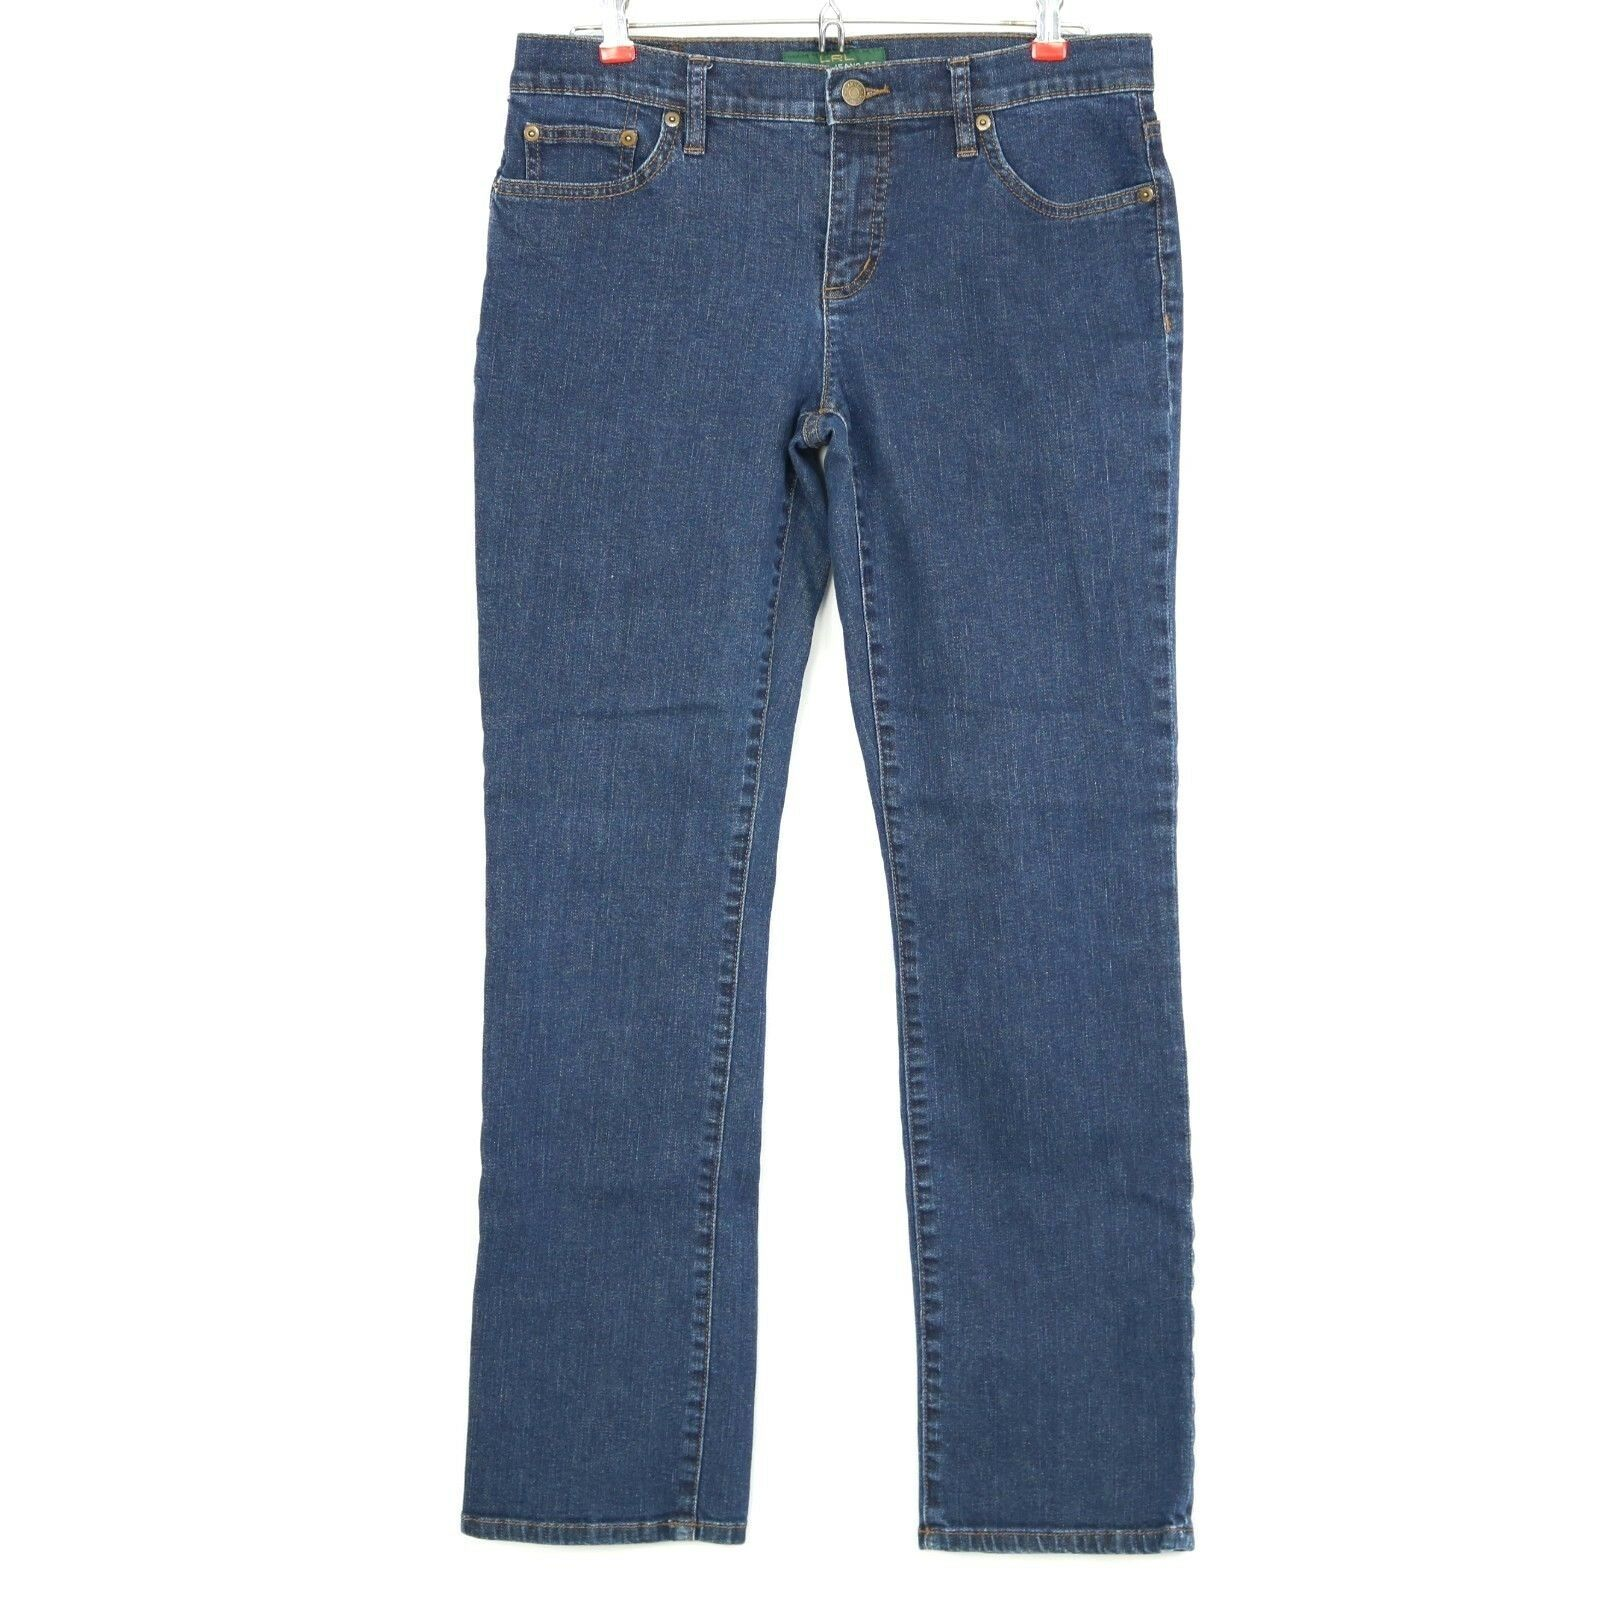 05c59127e7d Lauren Ralph Lauren Womens Jeans Modern and 50 similar items